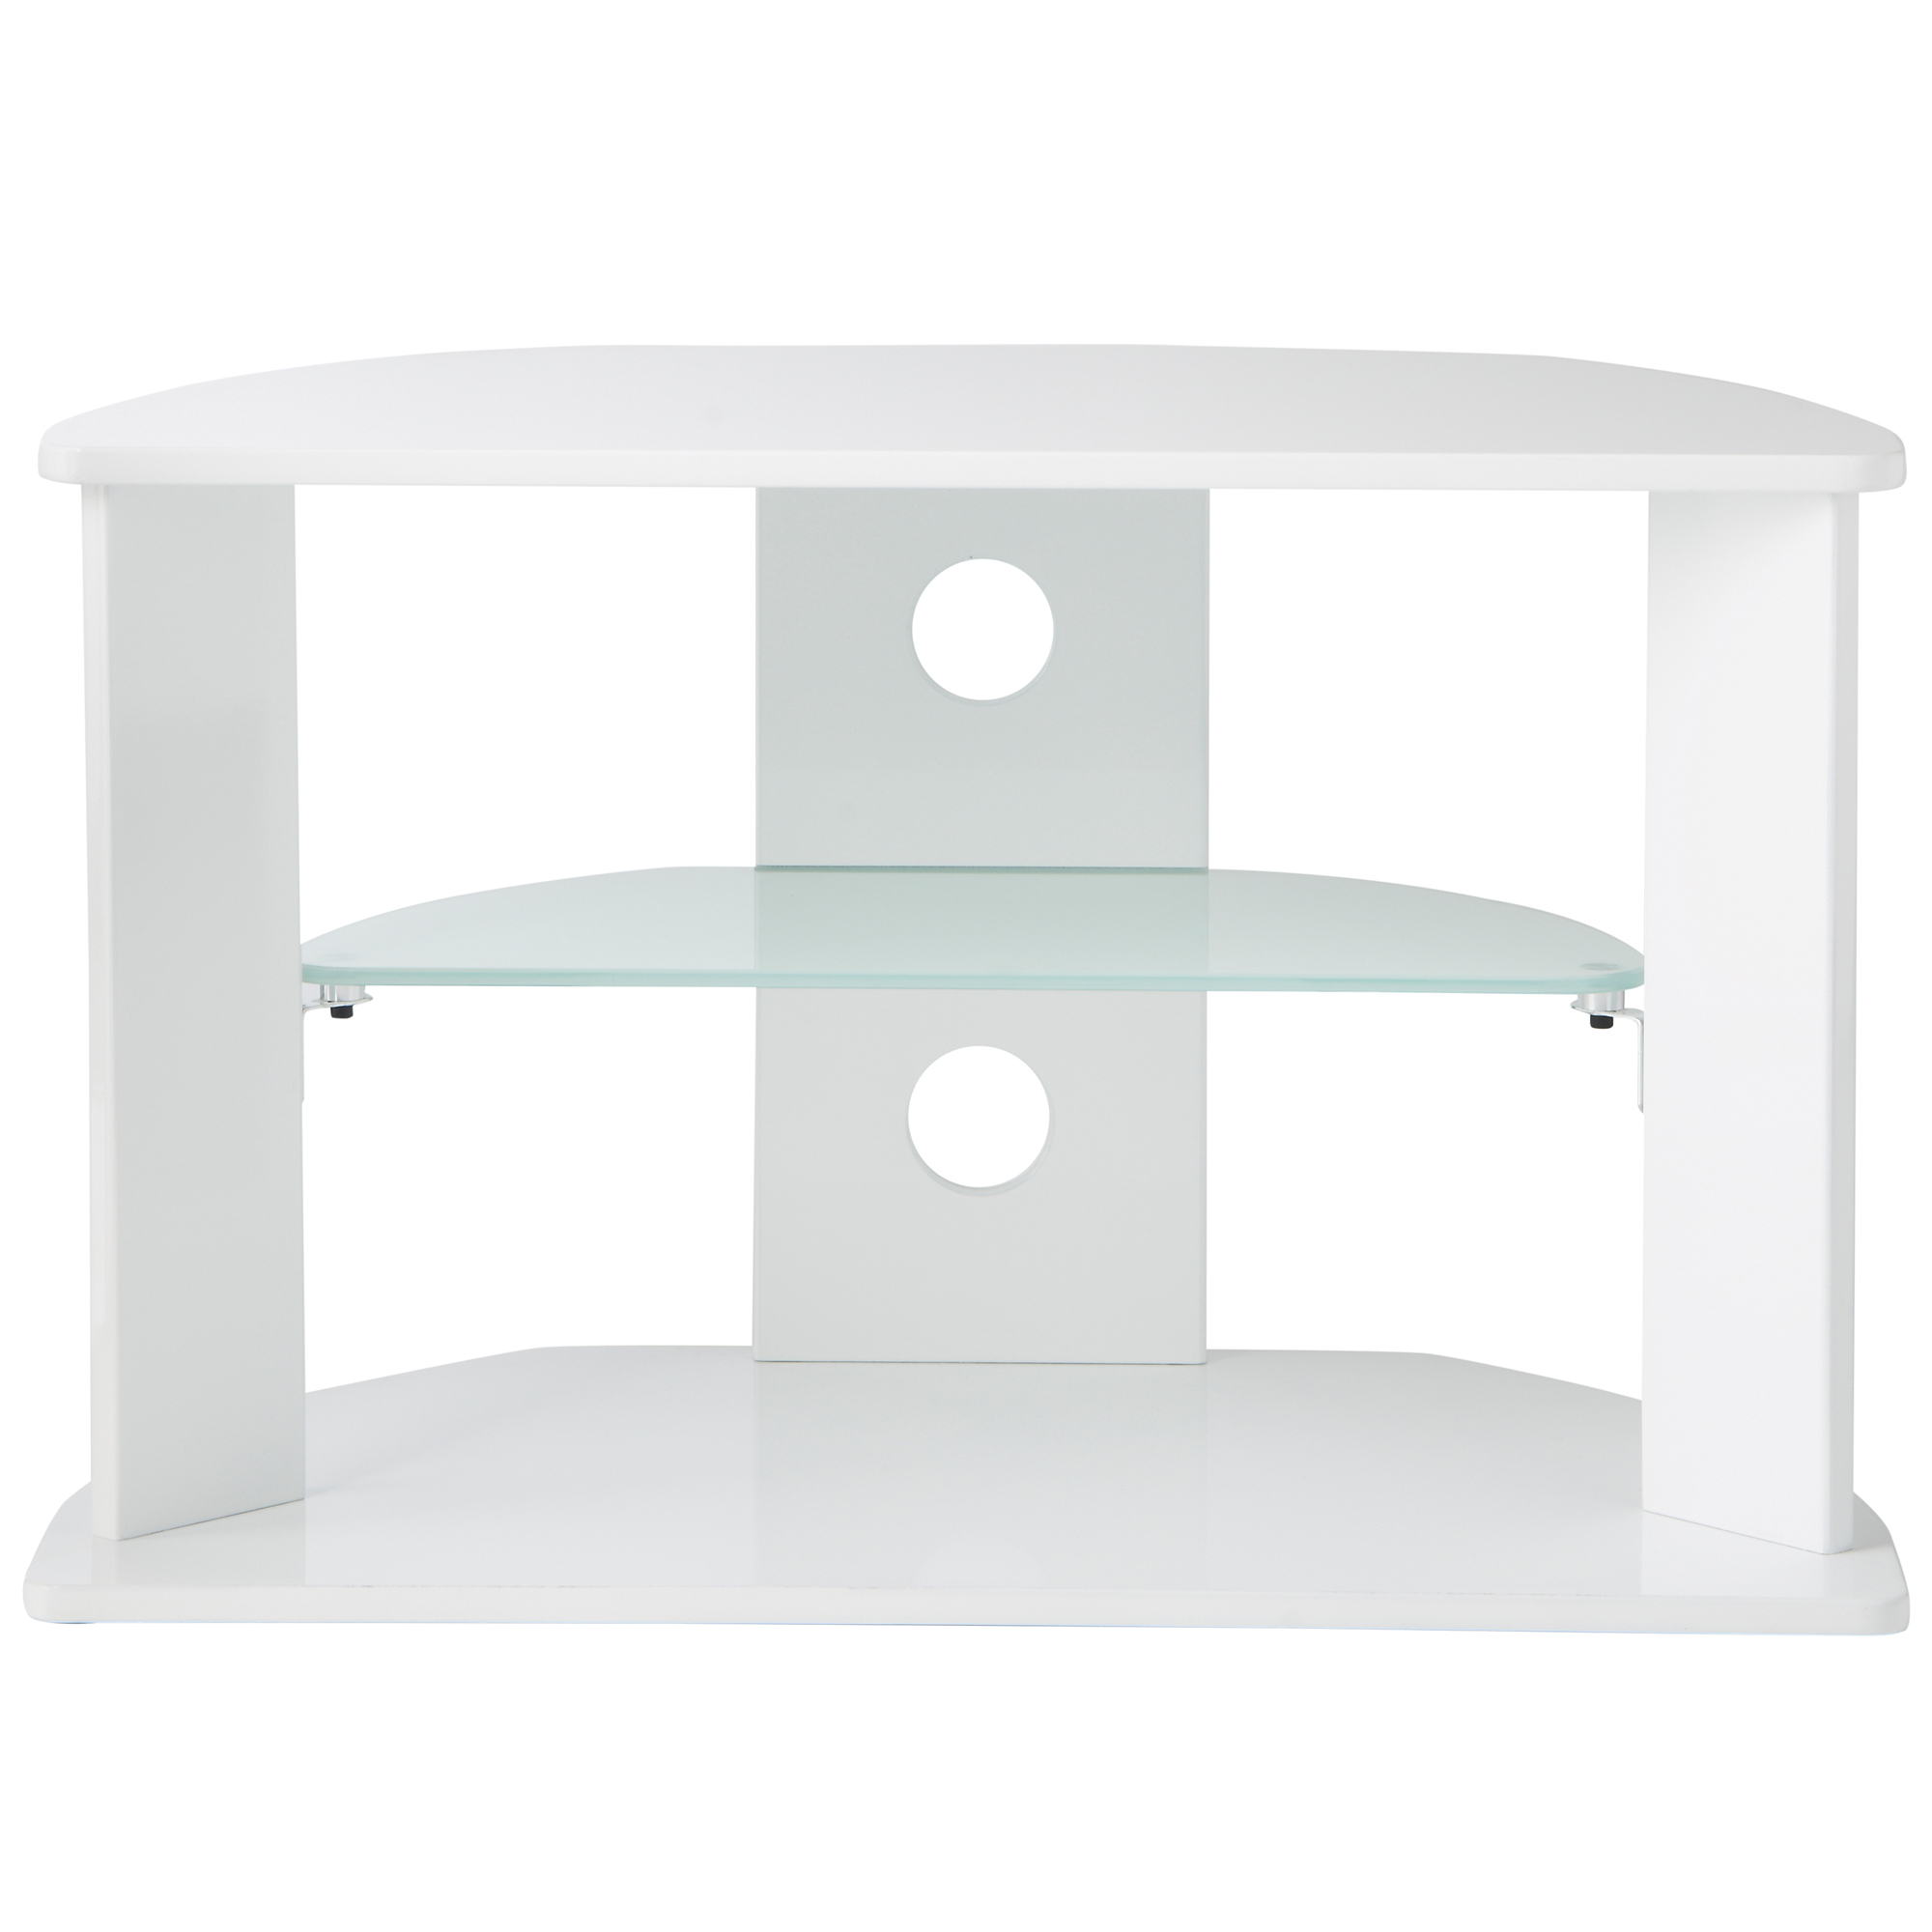 Well Liked Vonhaus High Gloss Mdf White Tv Stand With 3 Shelves For Tvs Up To Intended For Oval White Tv Stands (View 18 of 20)